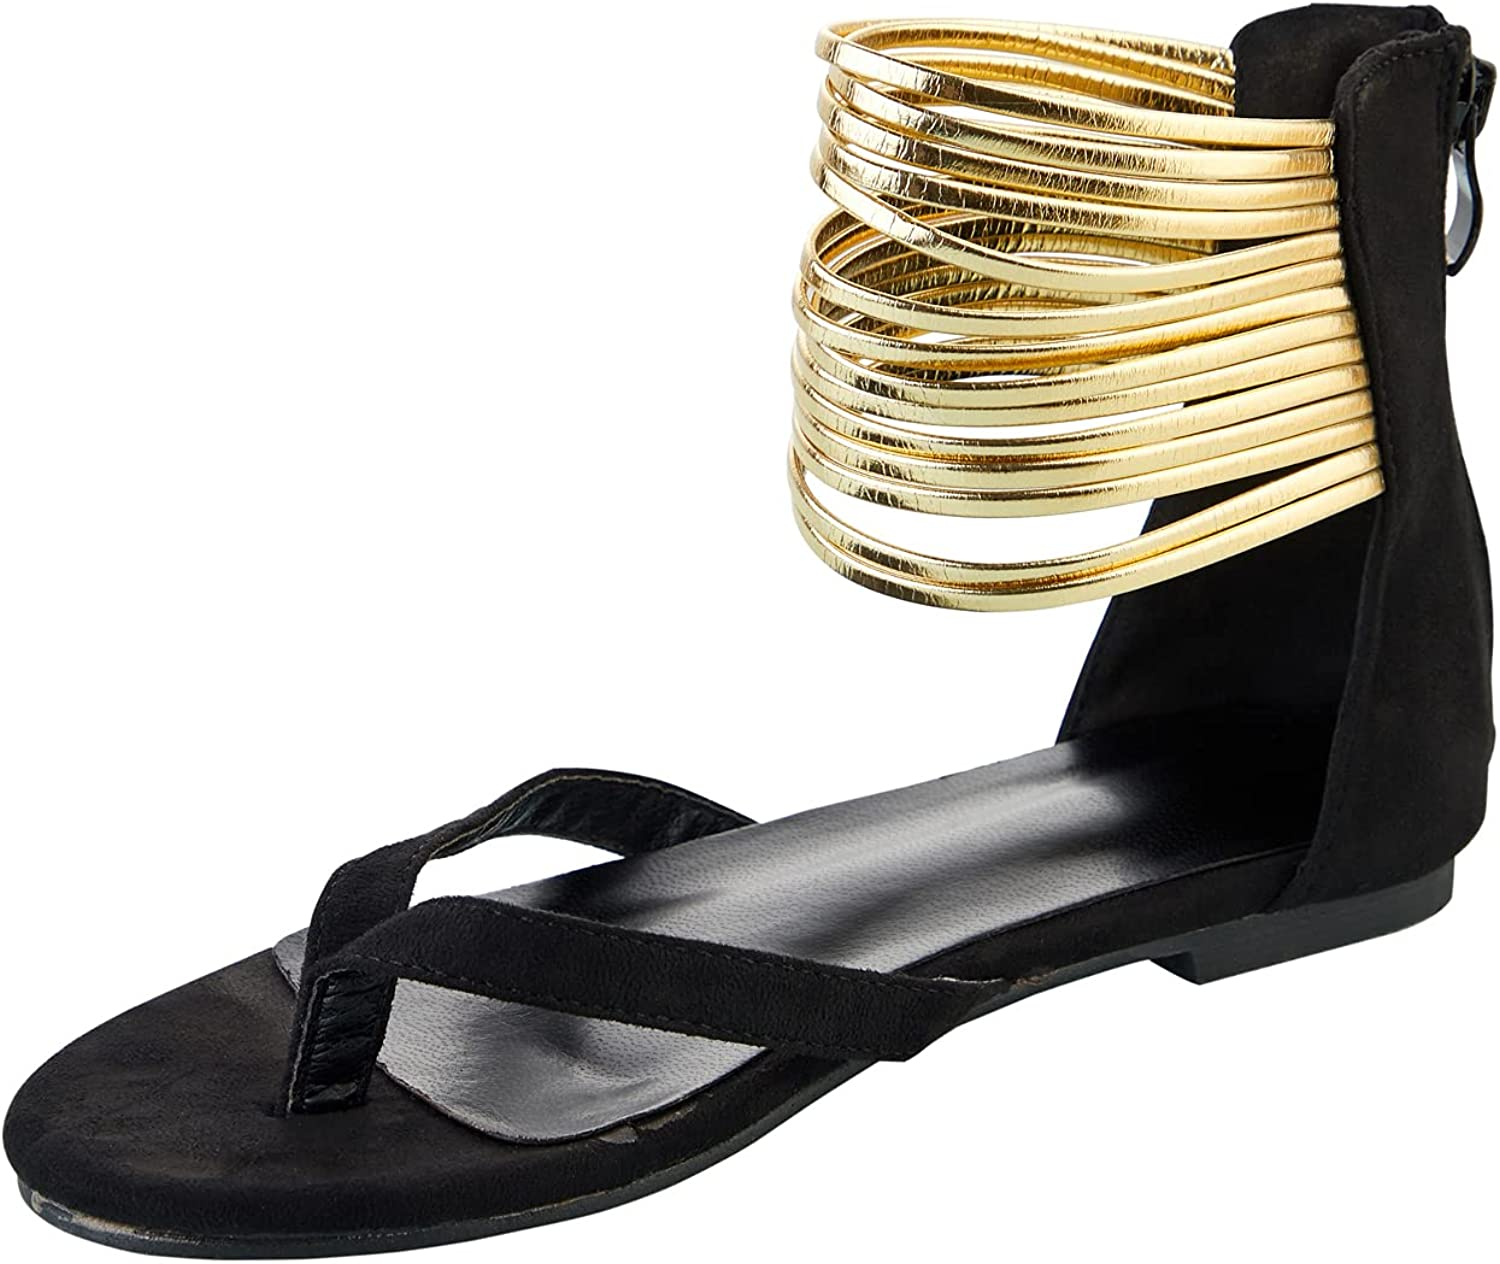 Women's Strappy Gladiator Flat Sandals Ankle Strap Cut Out Thong Flip Flops Slide Shoes For Summer